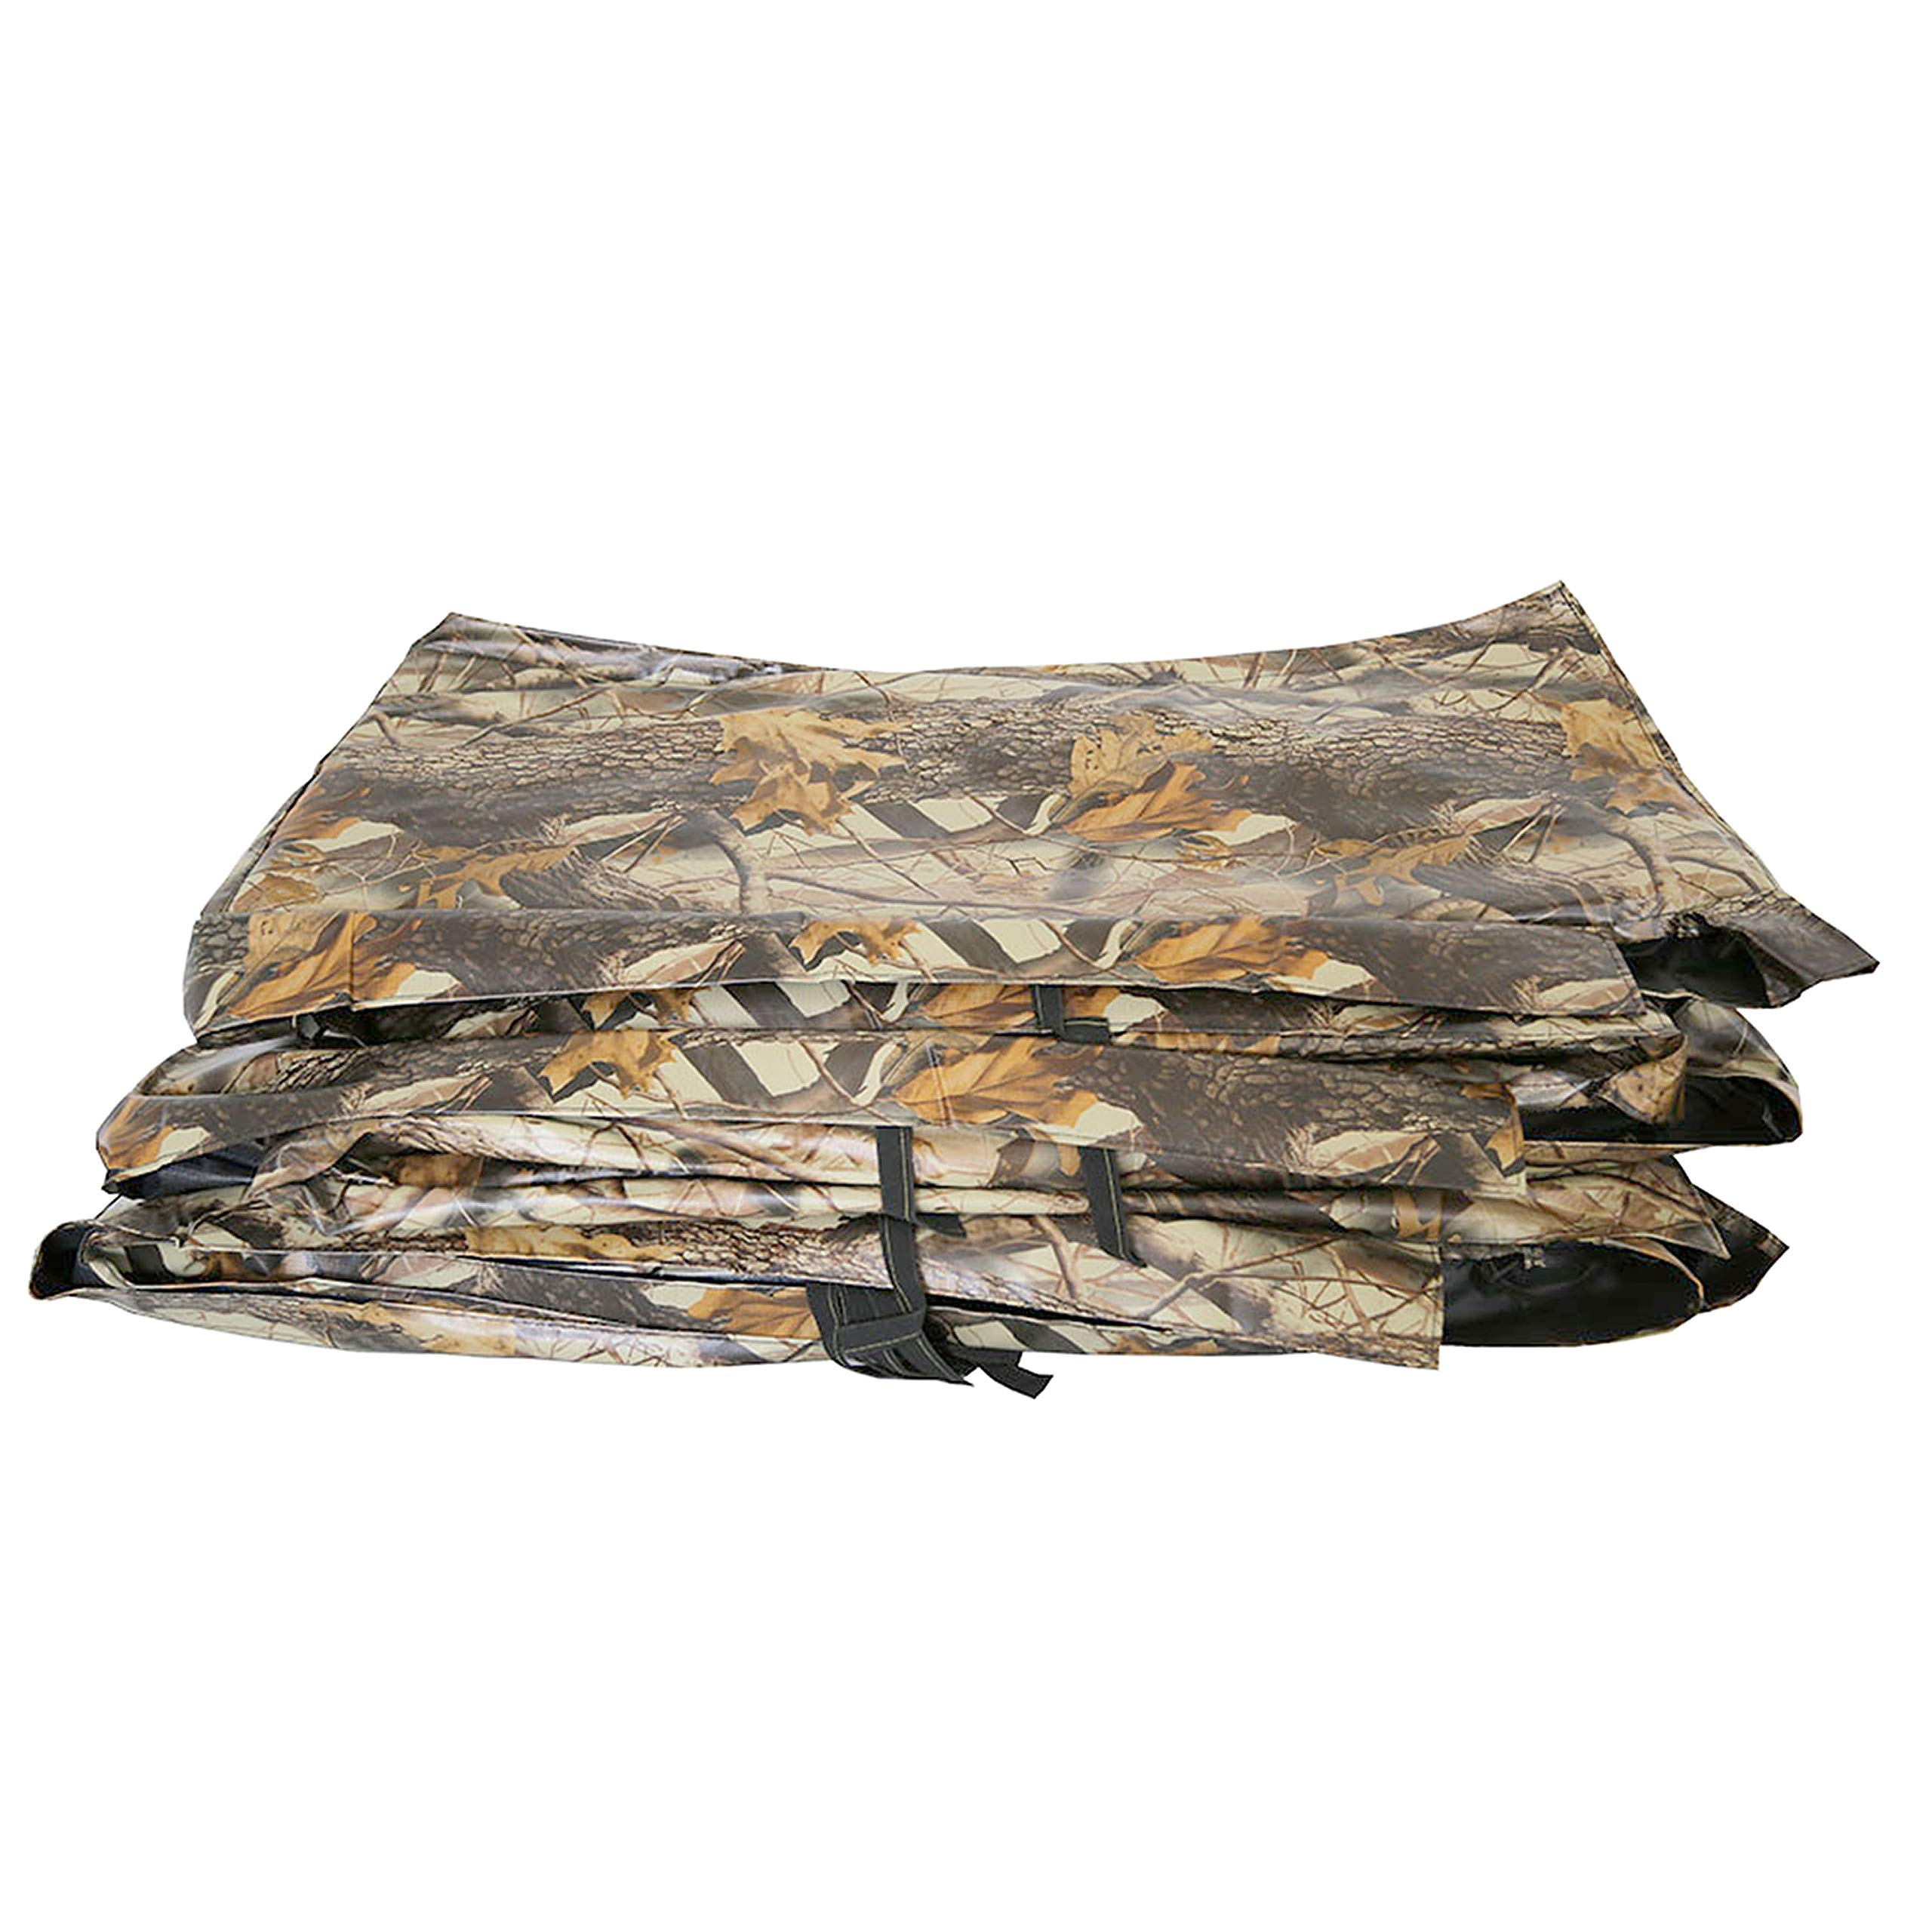 Skywalker Trampolines Camo 15' Round Spring Pad by Skywalker Trampolines (Image #1)